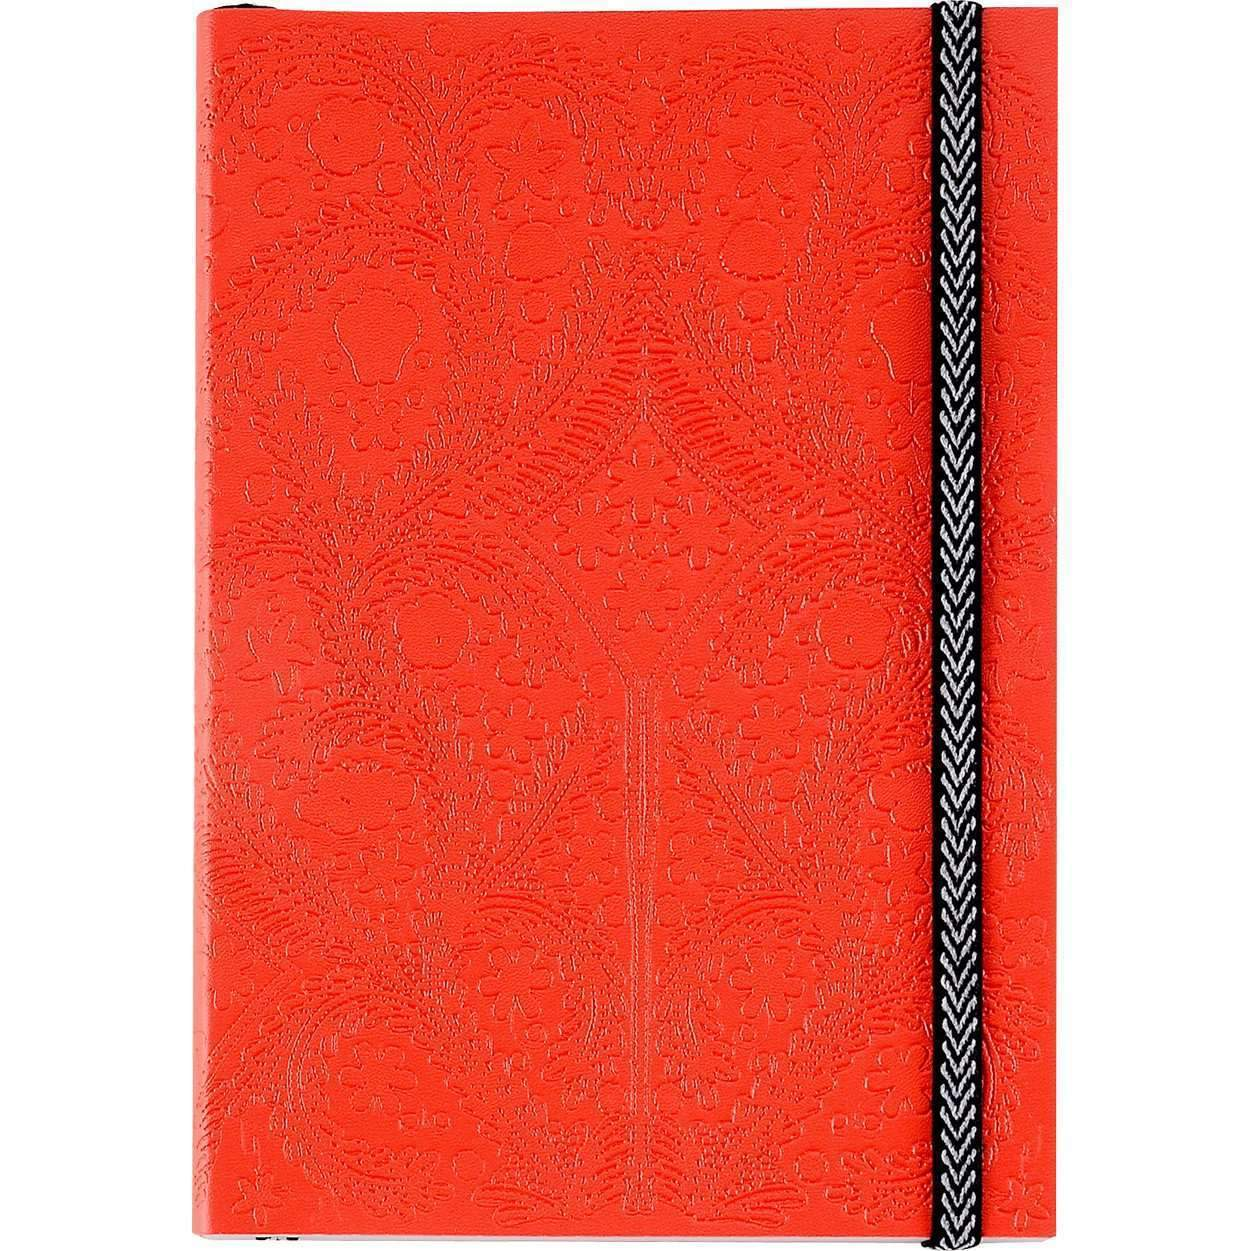 Scarlet Embossed Paseo Notebook Christian Lacroix Notebooks and Journals Christian Lacroix